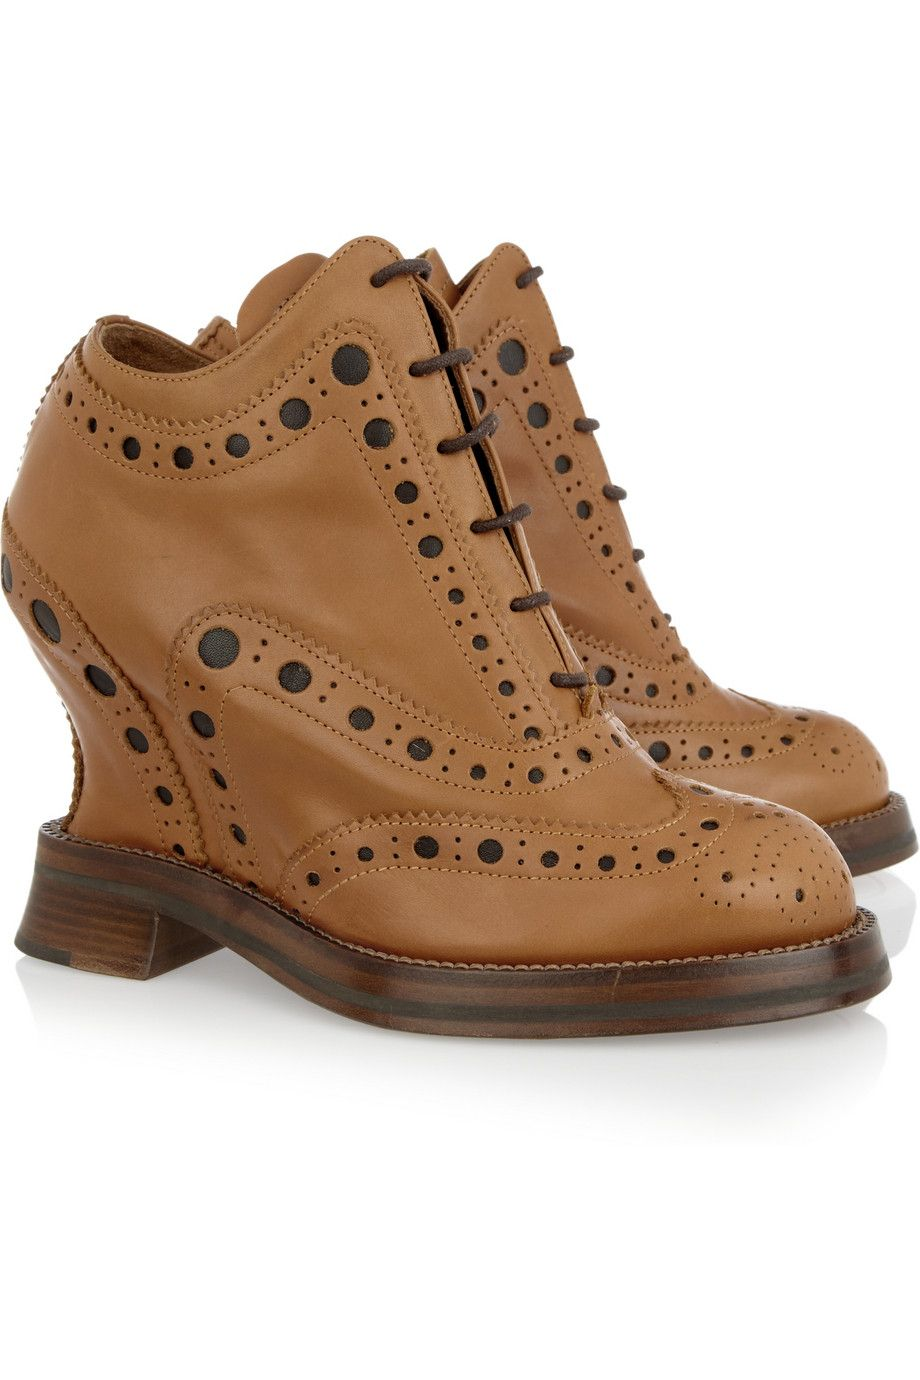 ACNE  Spin leather brogue-style wedges  $770